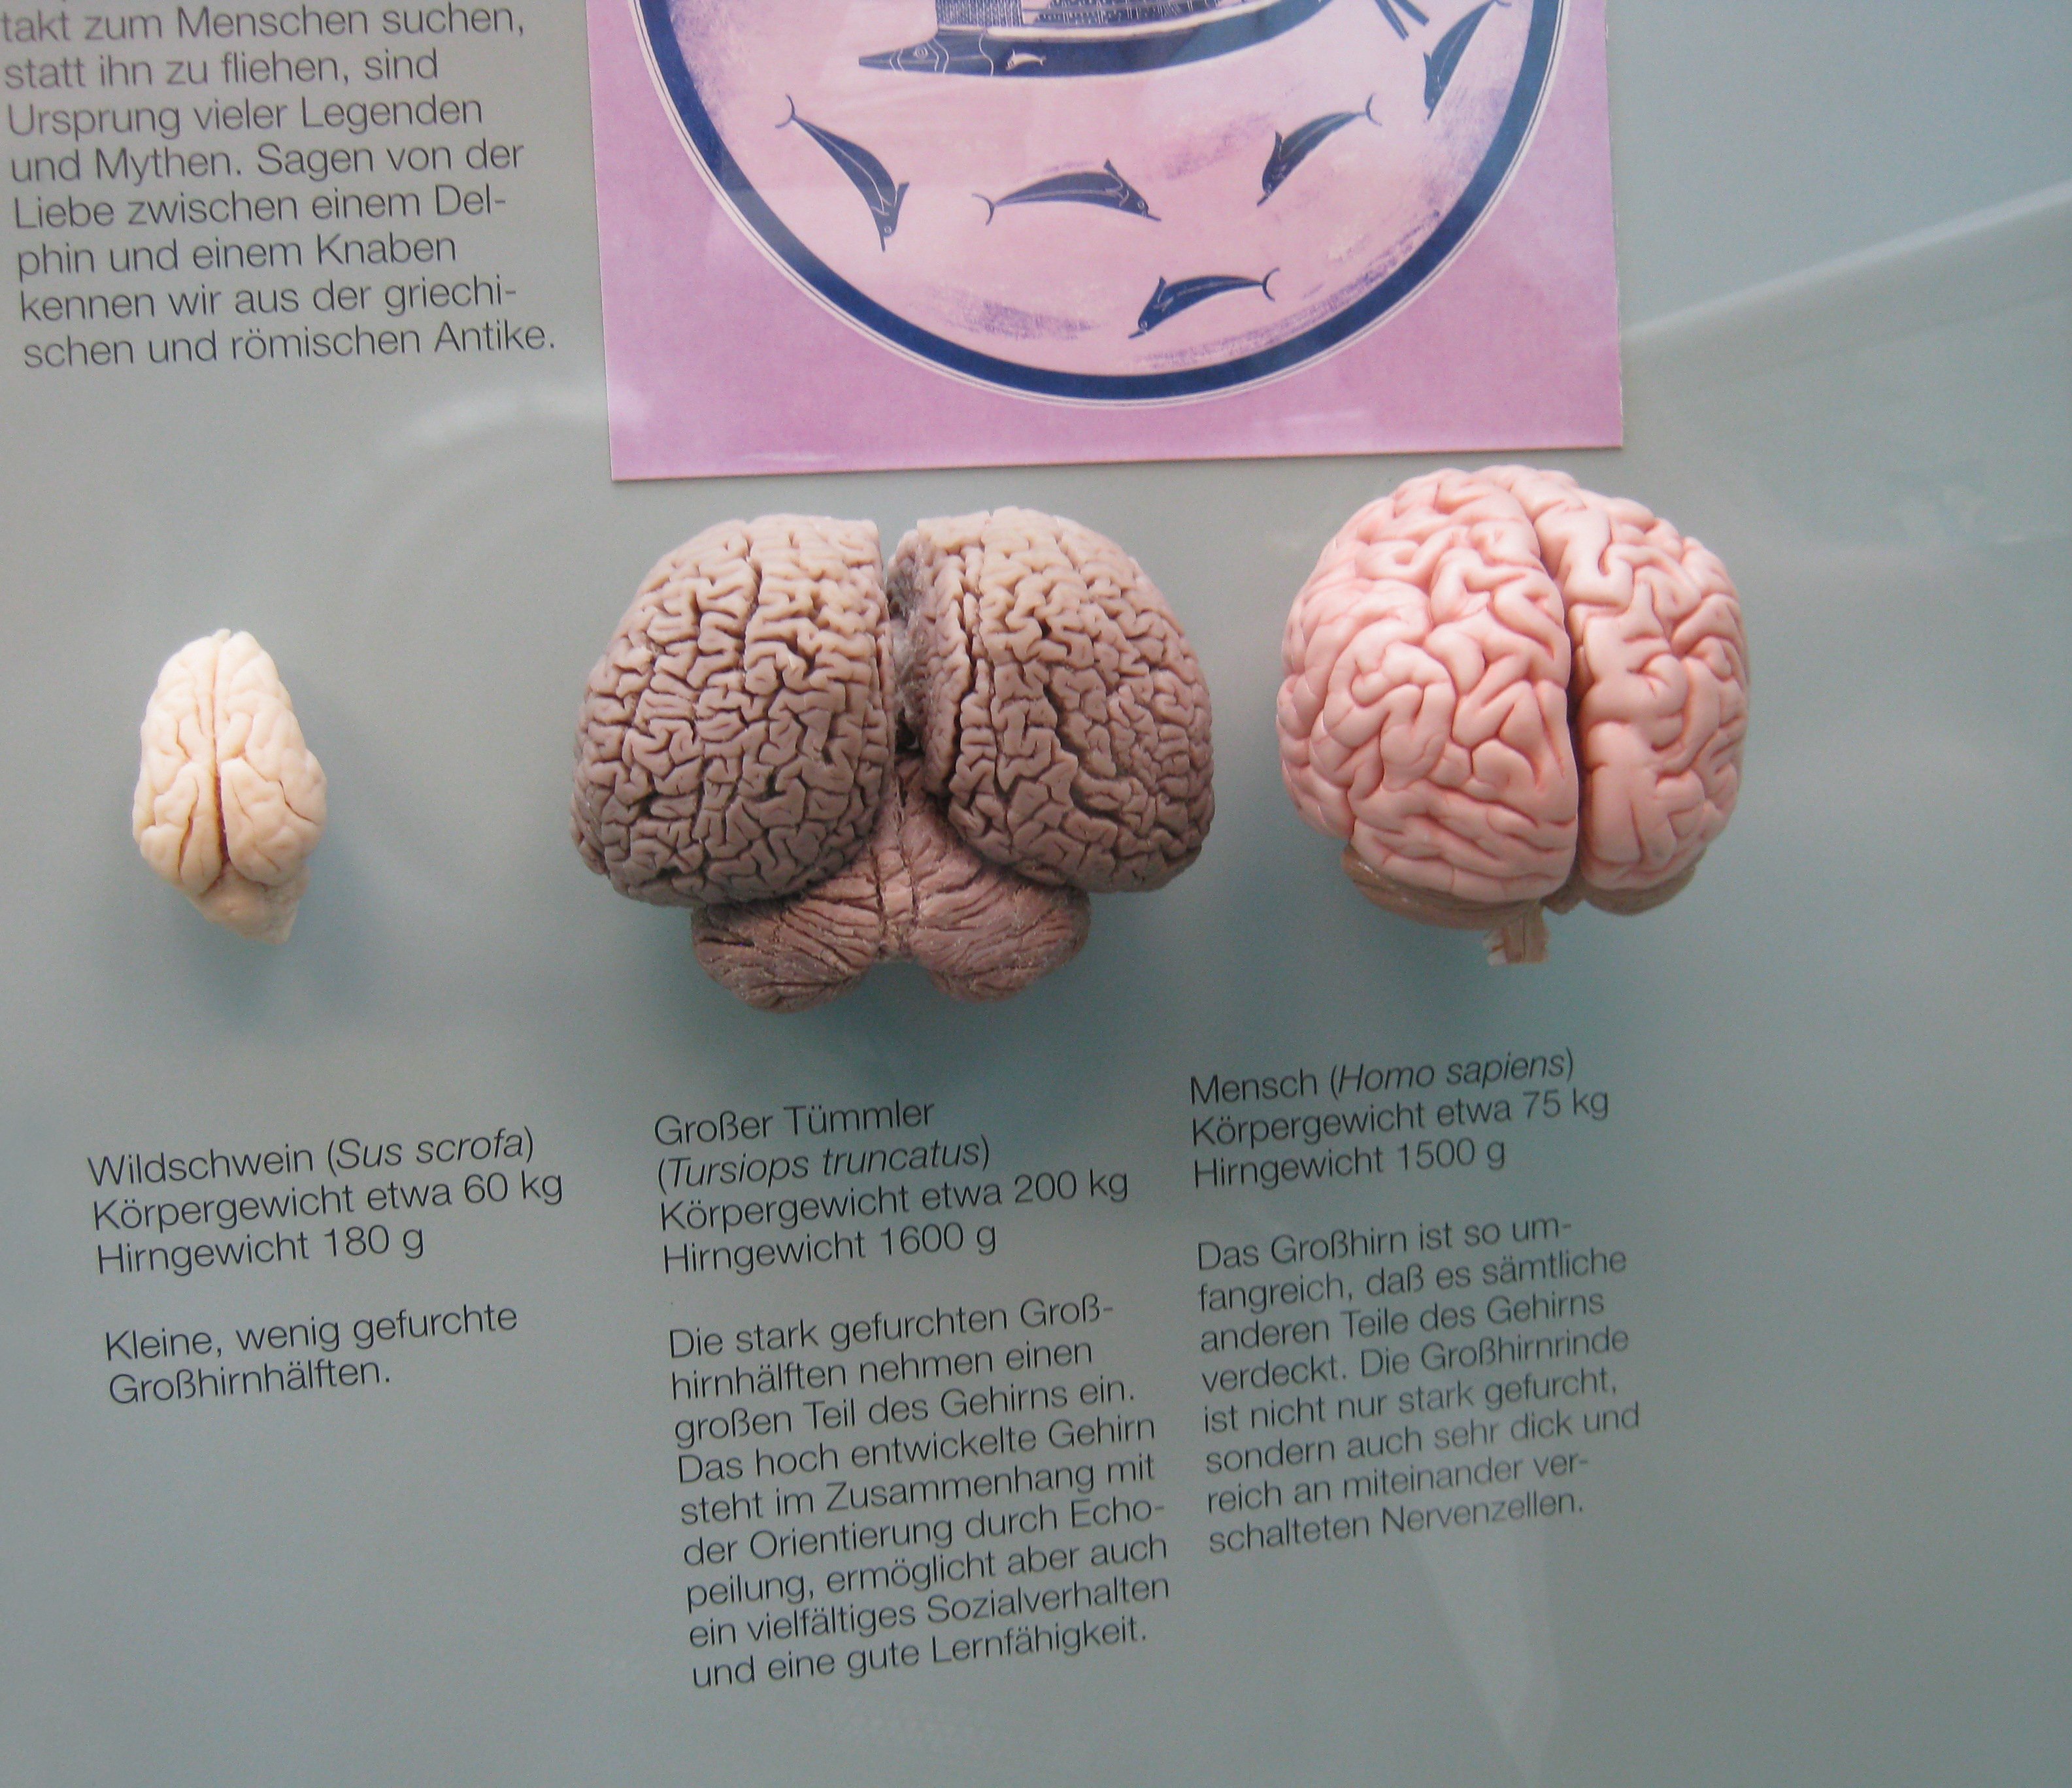 intelligence vs brain size Humans boast the biggest brains, relative to body size brain size seems to have nothing to do with scores on standardized intelligence tests, according to a brain.